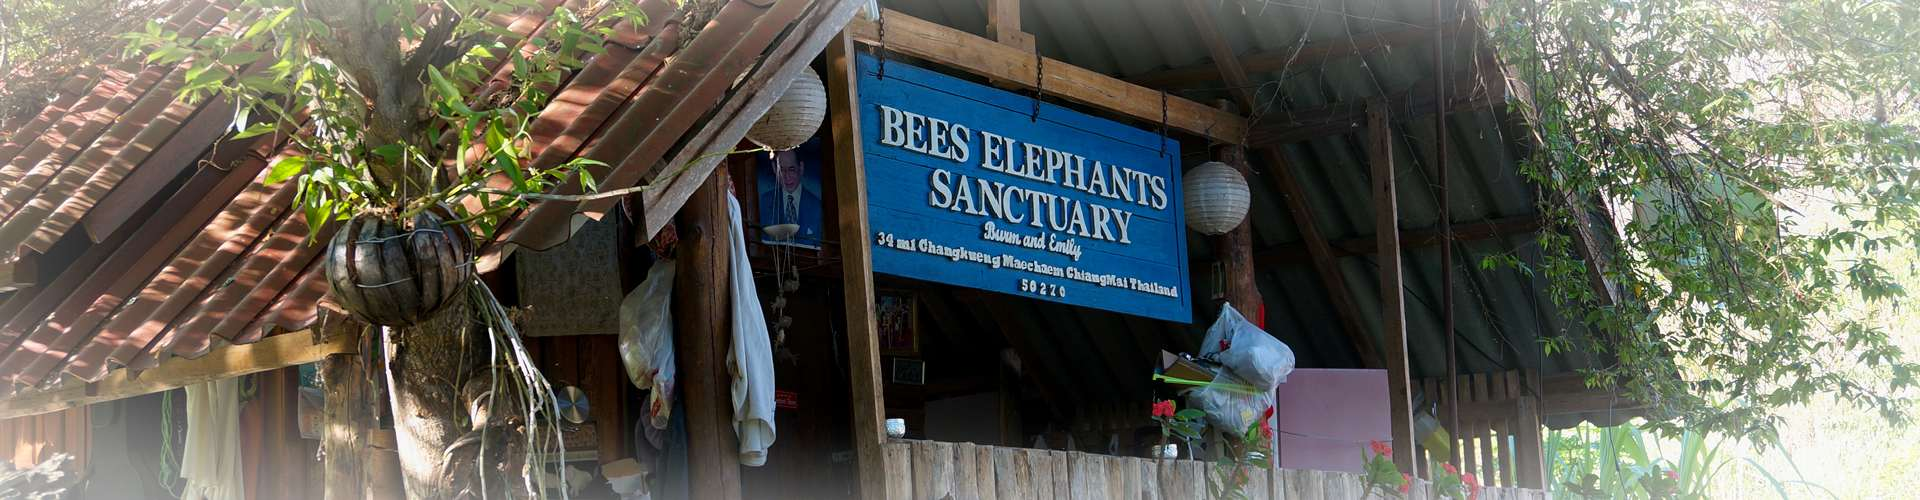 BEES Elephant Sanctuary Homepage 01 Slide